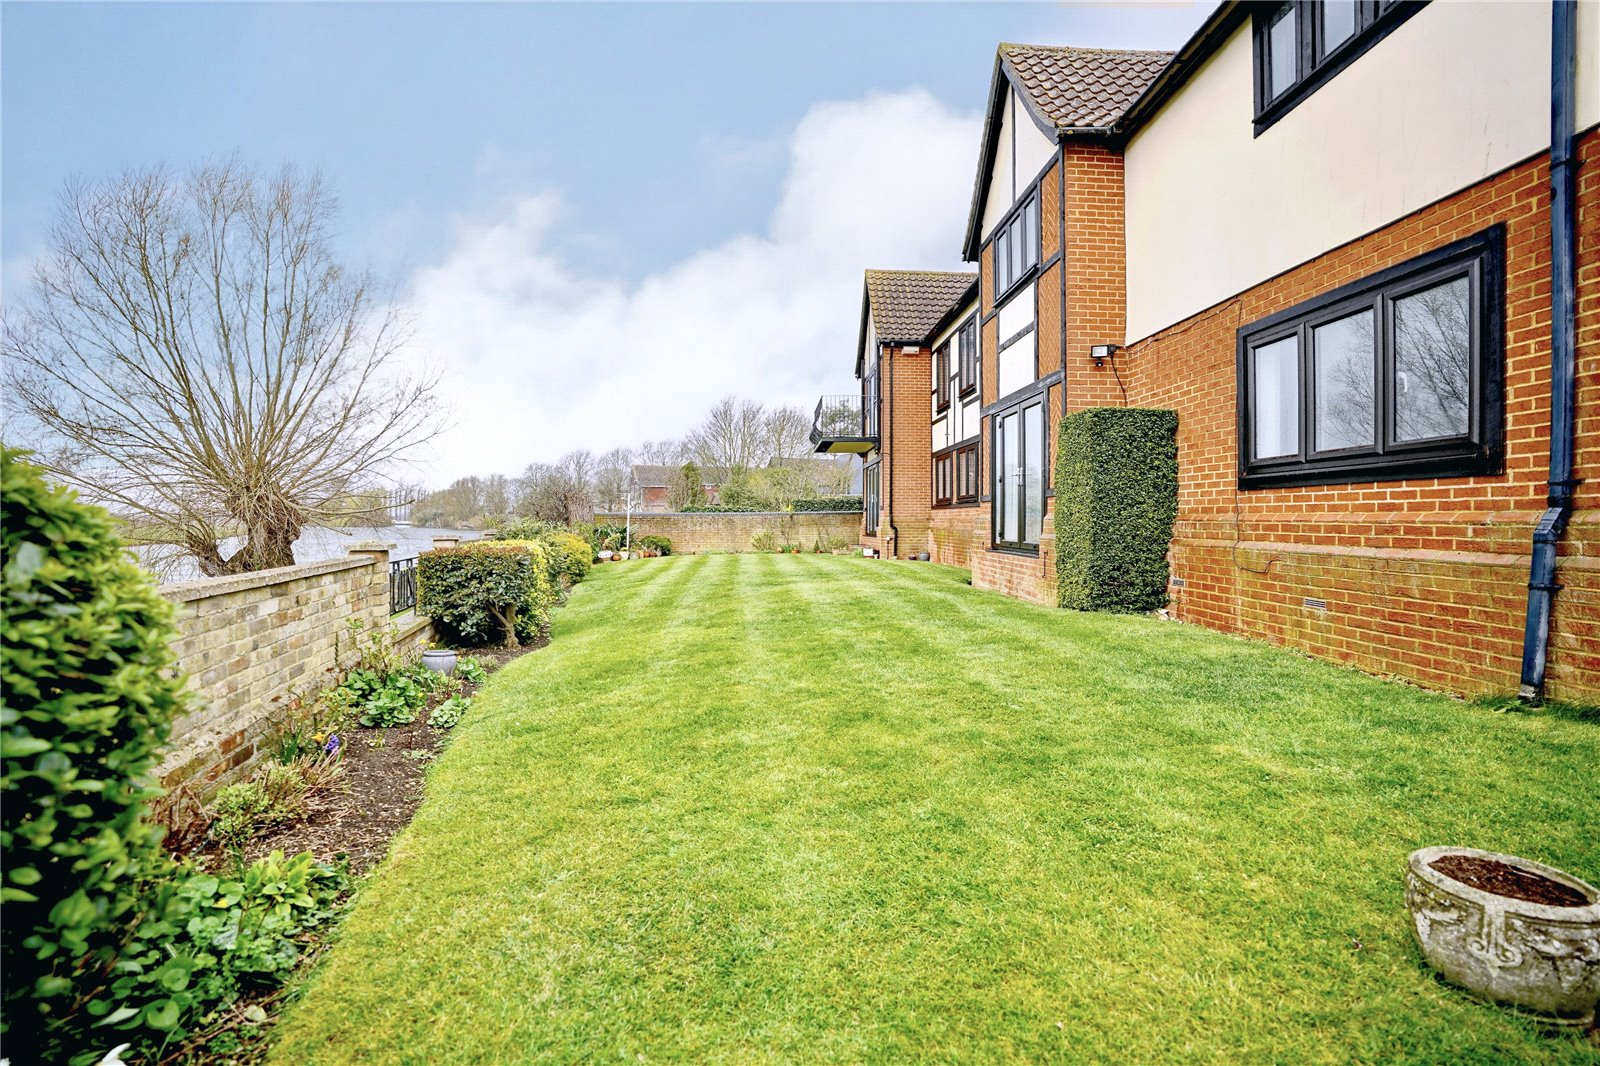 2 bed apartment for sale in Earith, PE28 3PP 12